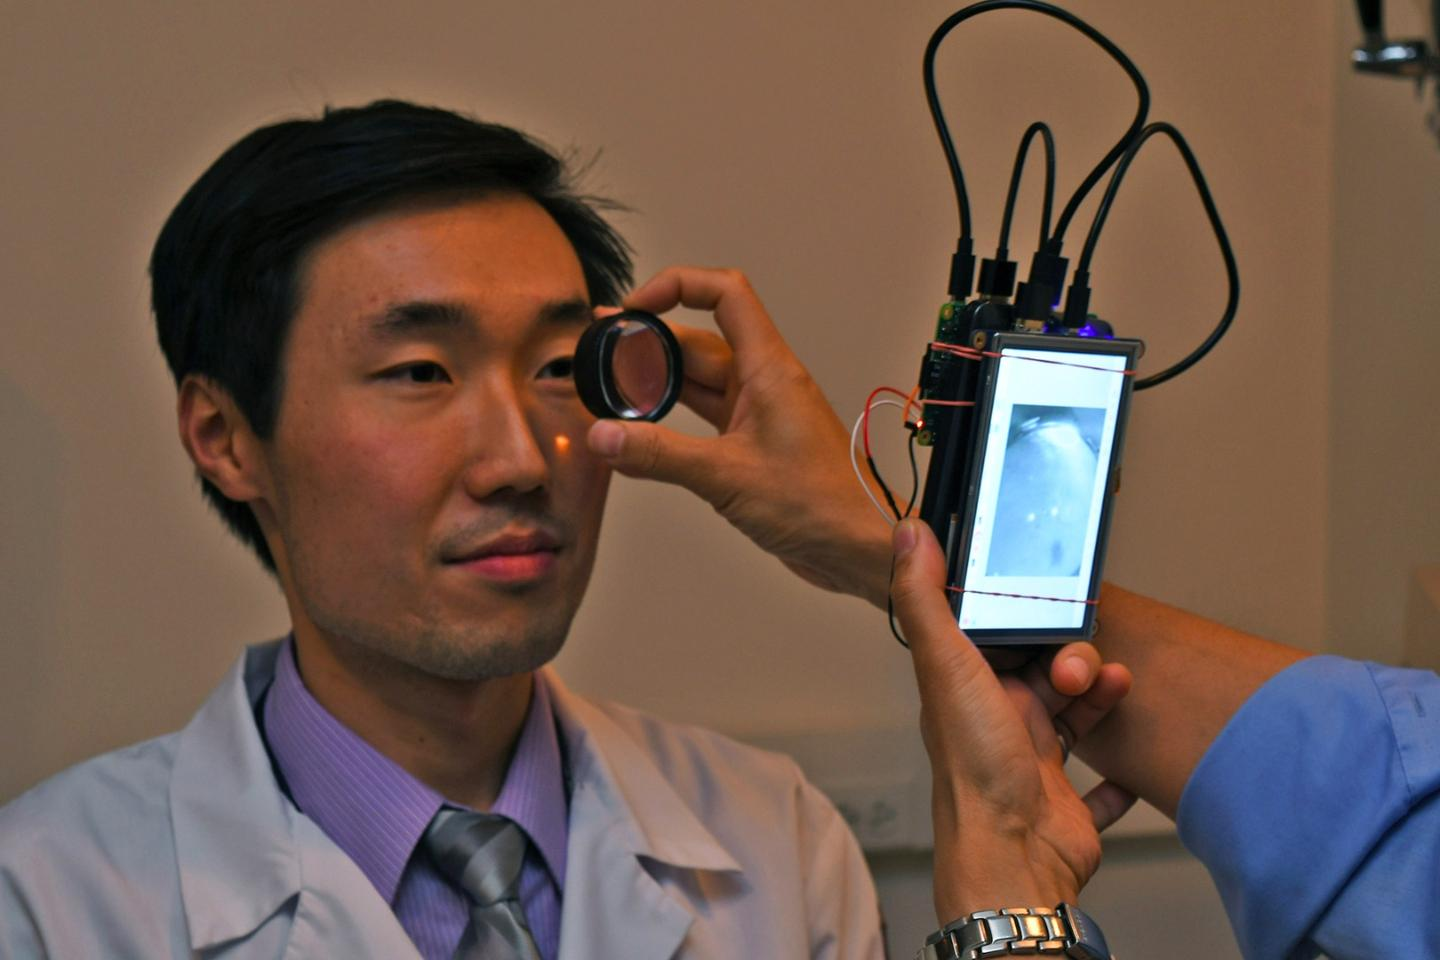 Dr. Bailey Shen has his retina imaged using the prototype camera